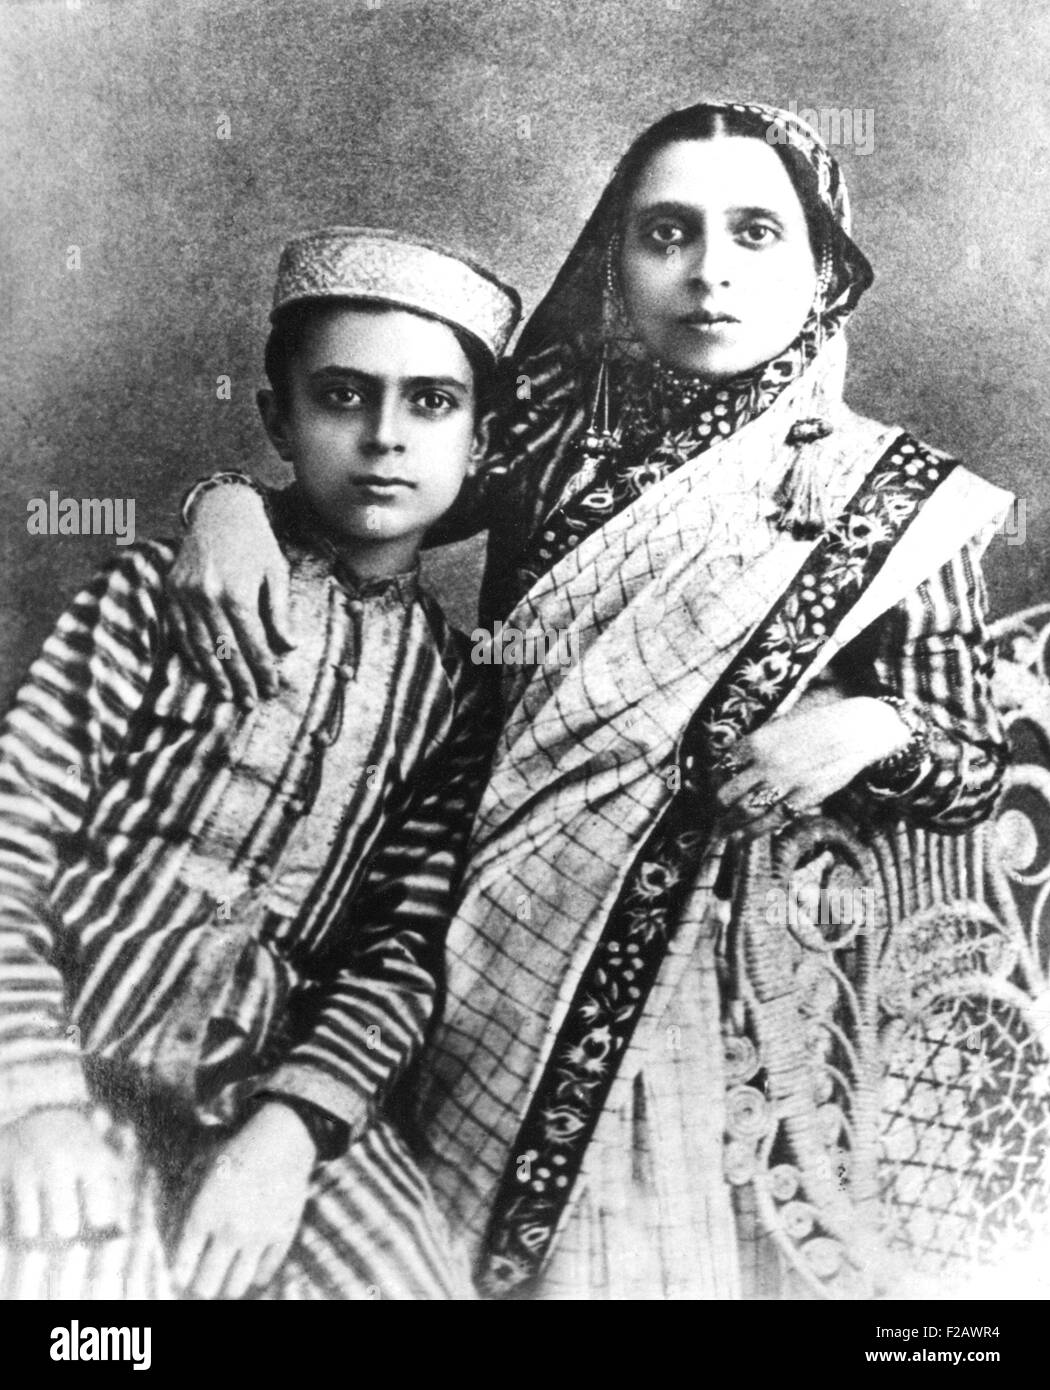 Jawaharlal Nehru and his mother, Swaroop Rani, ca. 1900. Jawaharlal was the only son of Motilal Nehru, a prominent - Stock Image